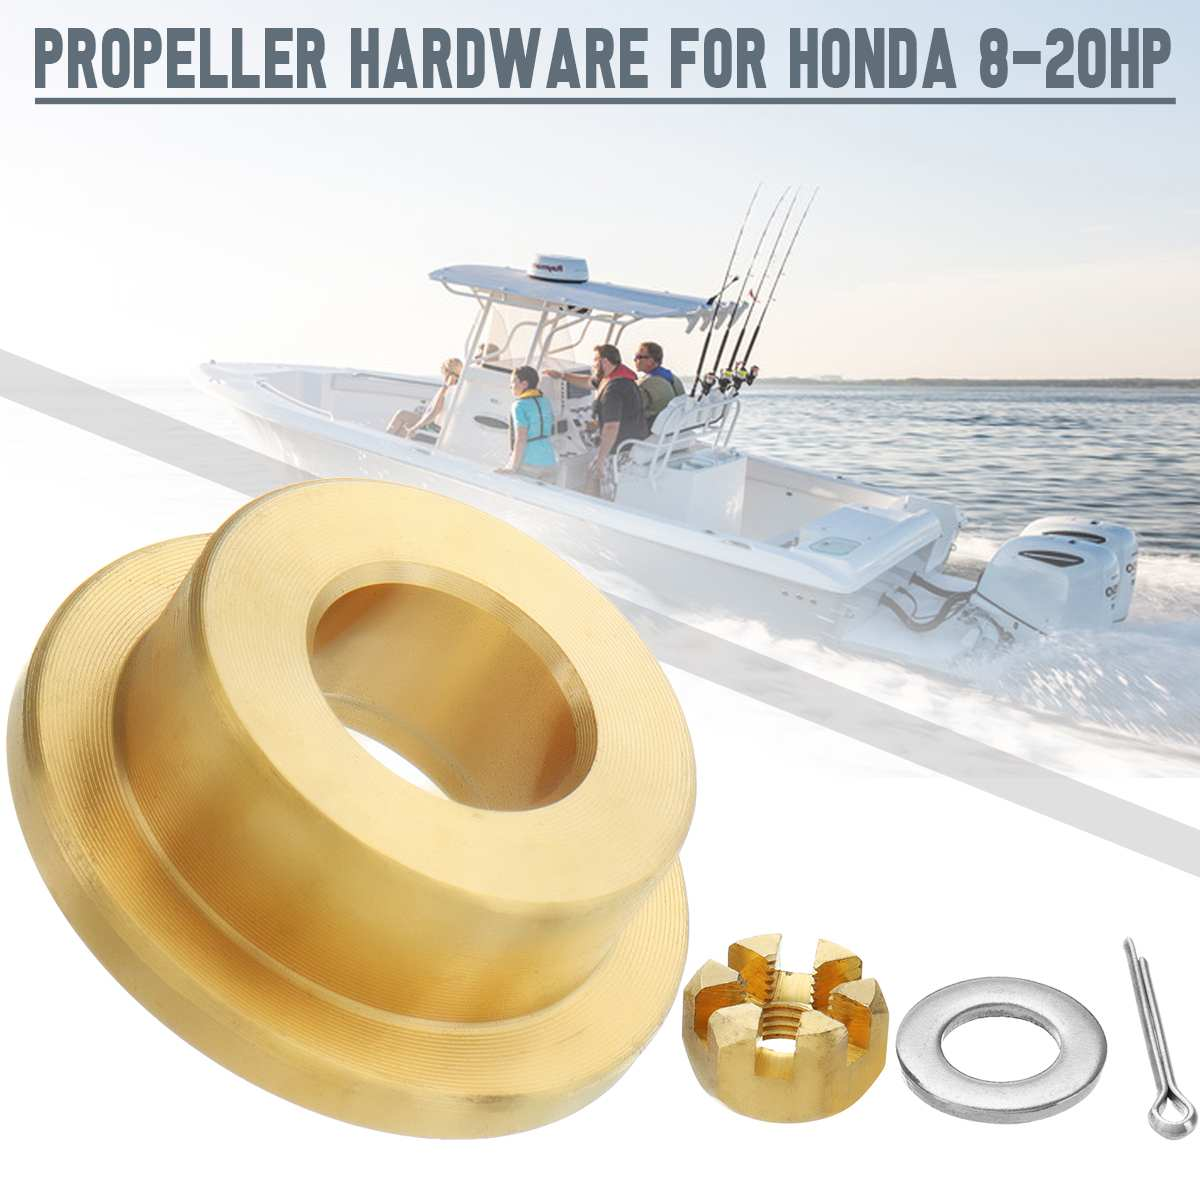 Propeller Hardware Kits Thrust Washer Spacer Nut Cotter Pin Brass For Honda 8-20HP Outboard Engine Boat Parts & Accessories